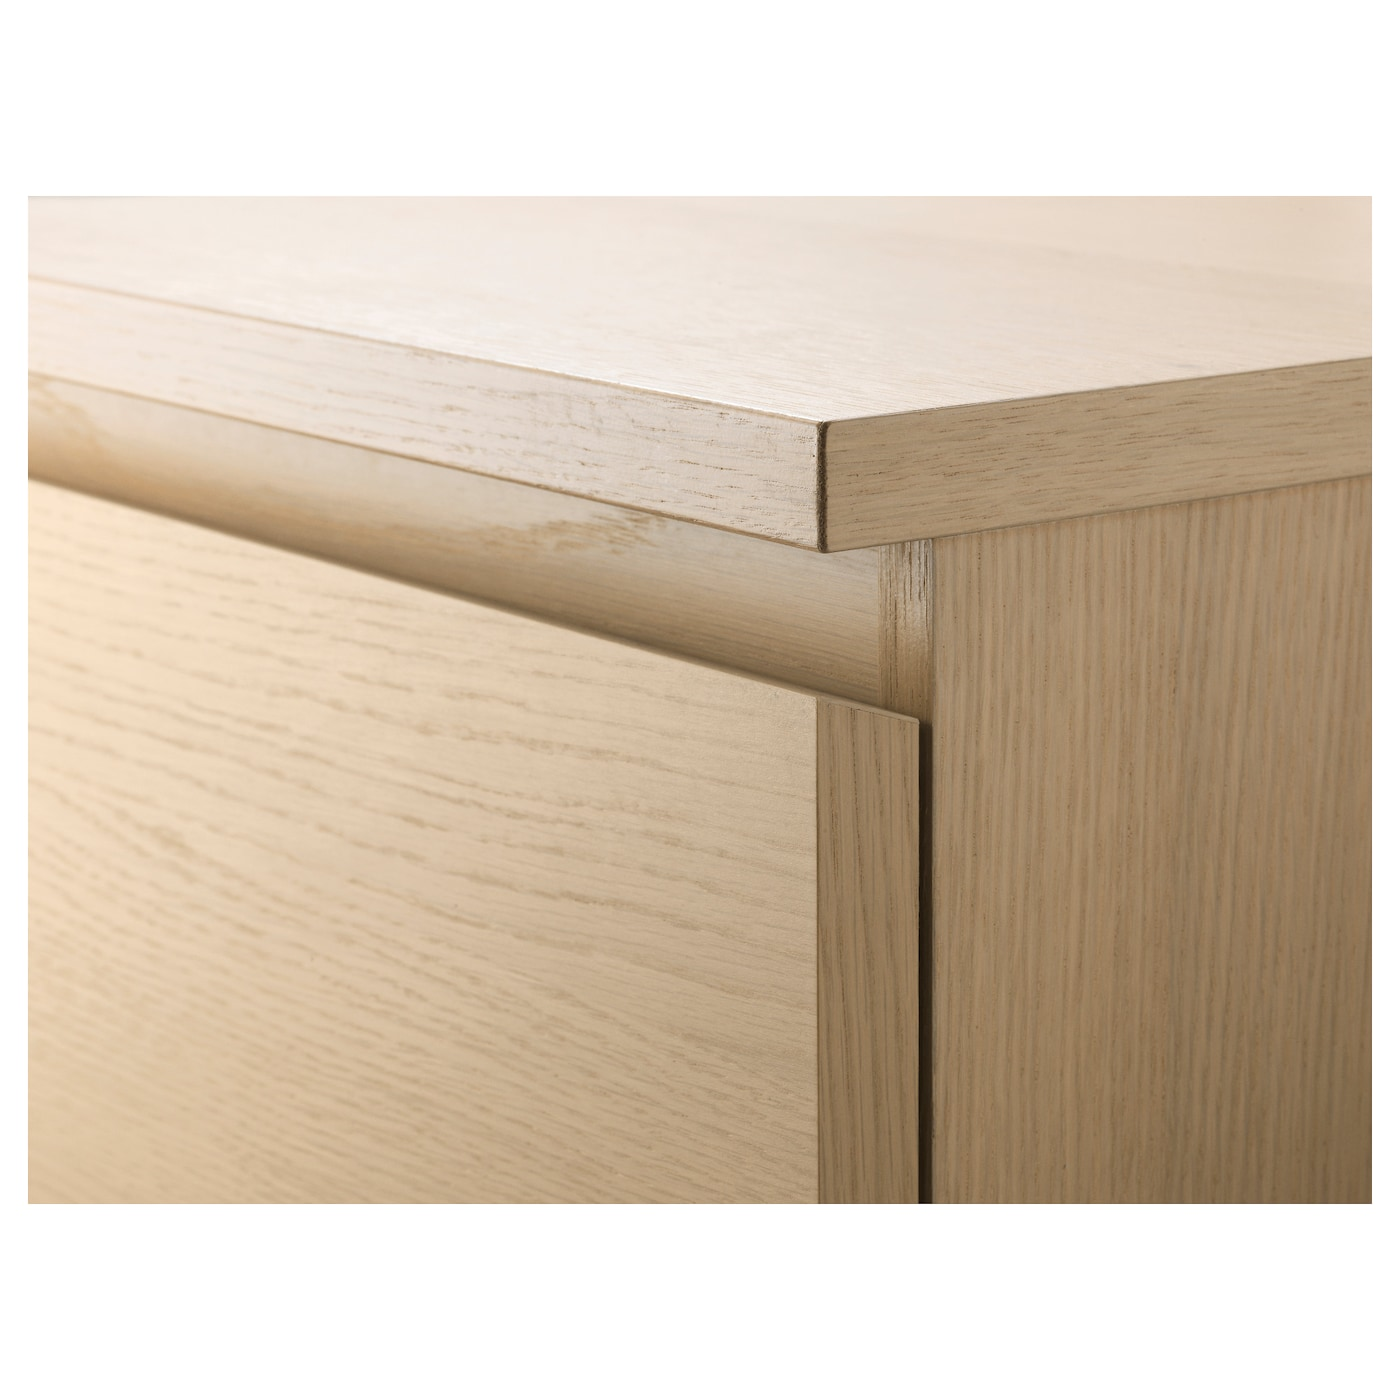 MALM Chest of 6 drawers, white stained oak veneer/mirror glass, 40x123 cm